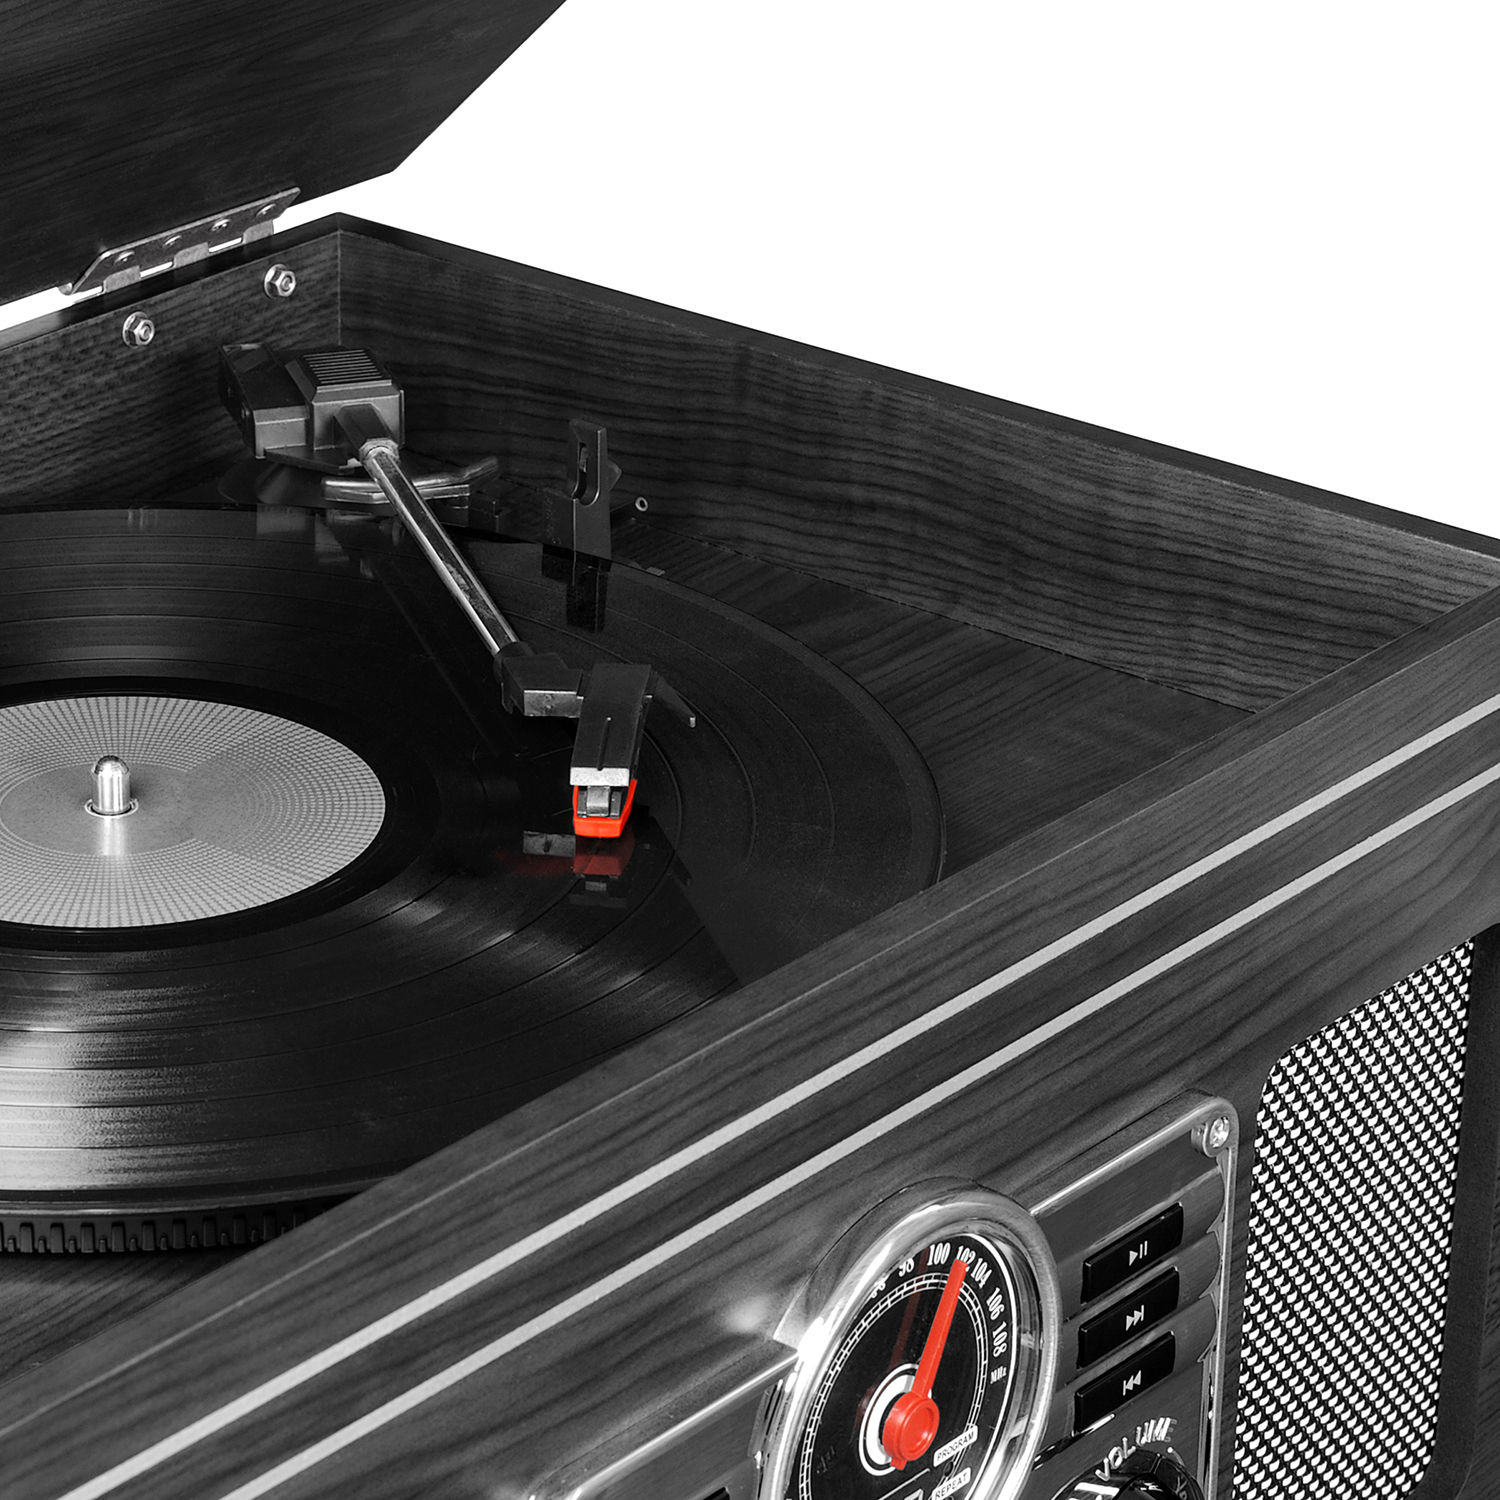 Victrola 6-in-1 Nostalgic Bluetooth Record Player with 3